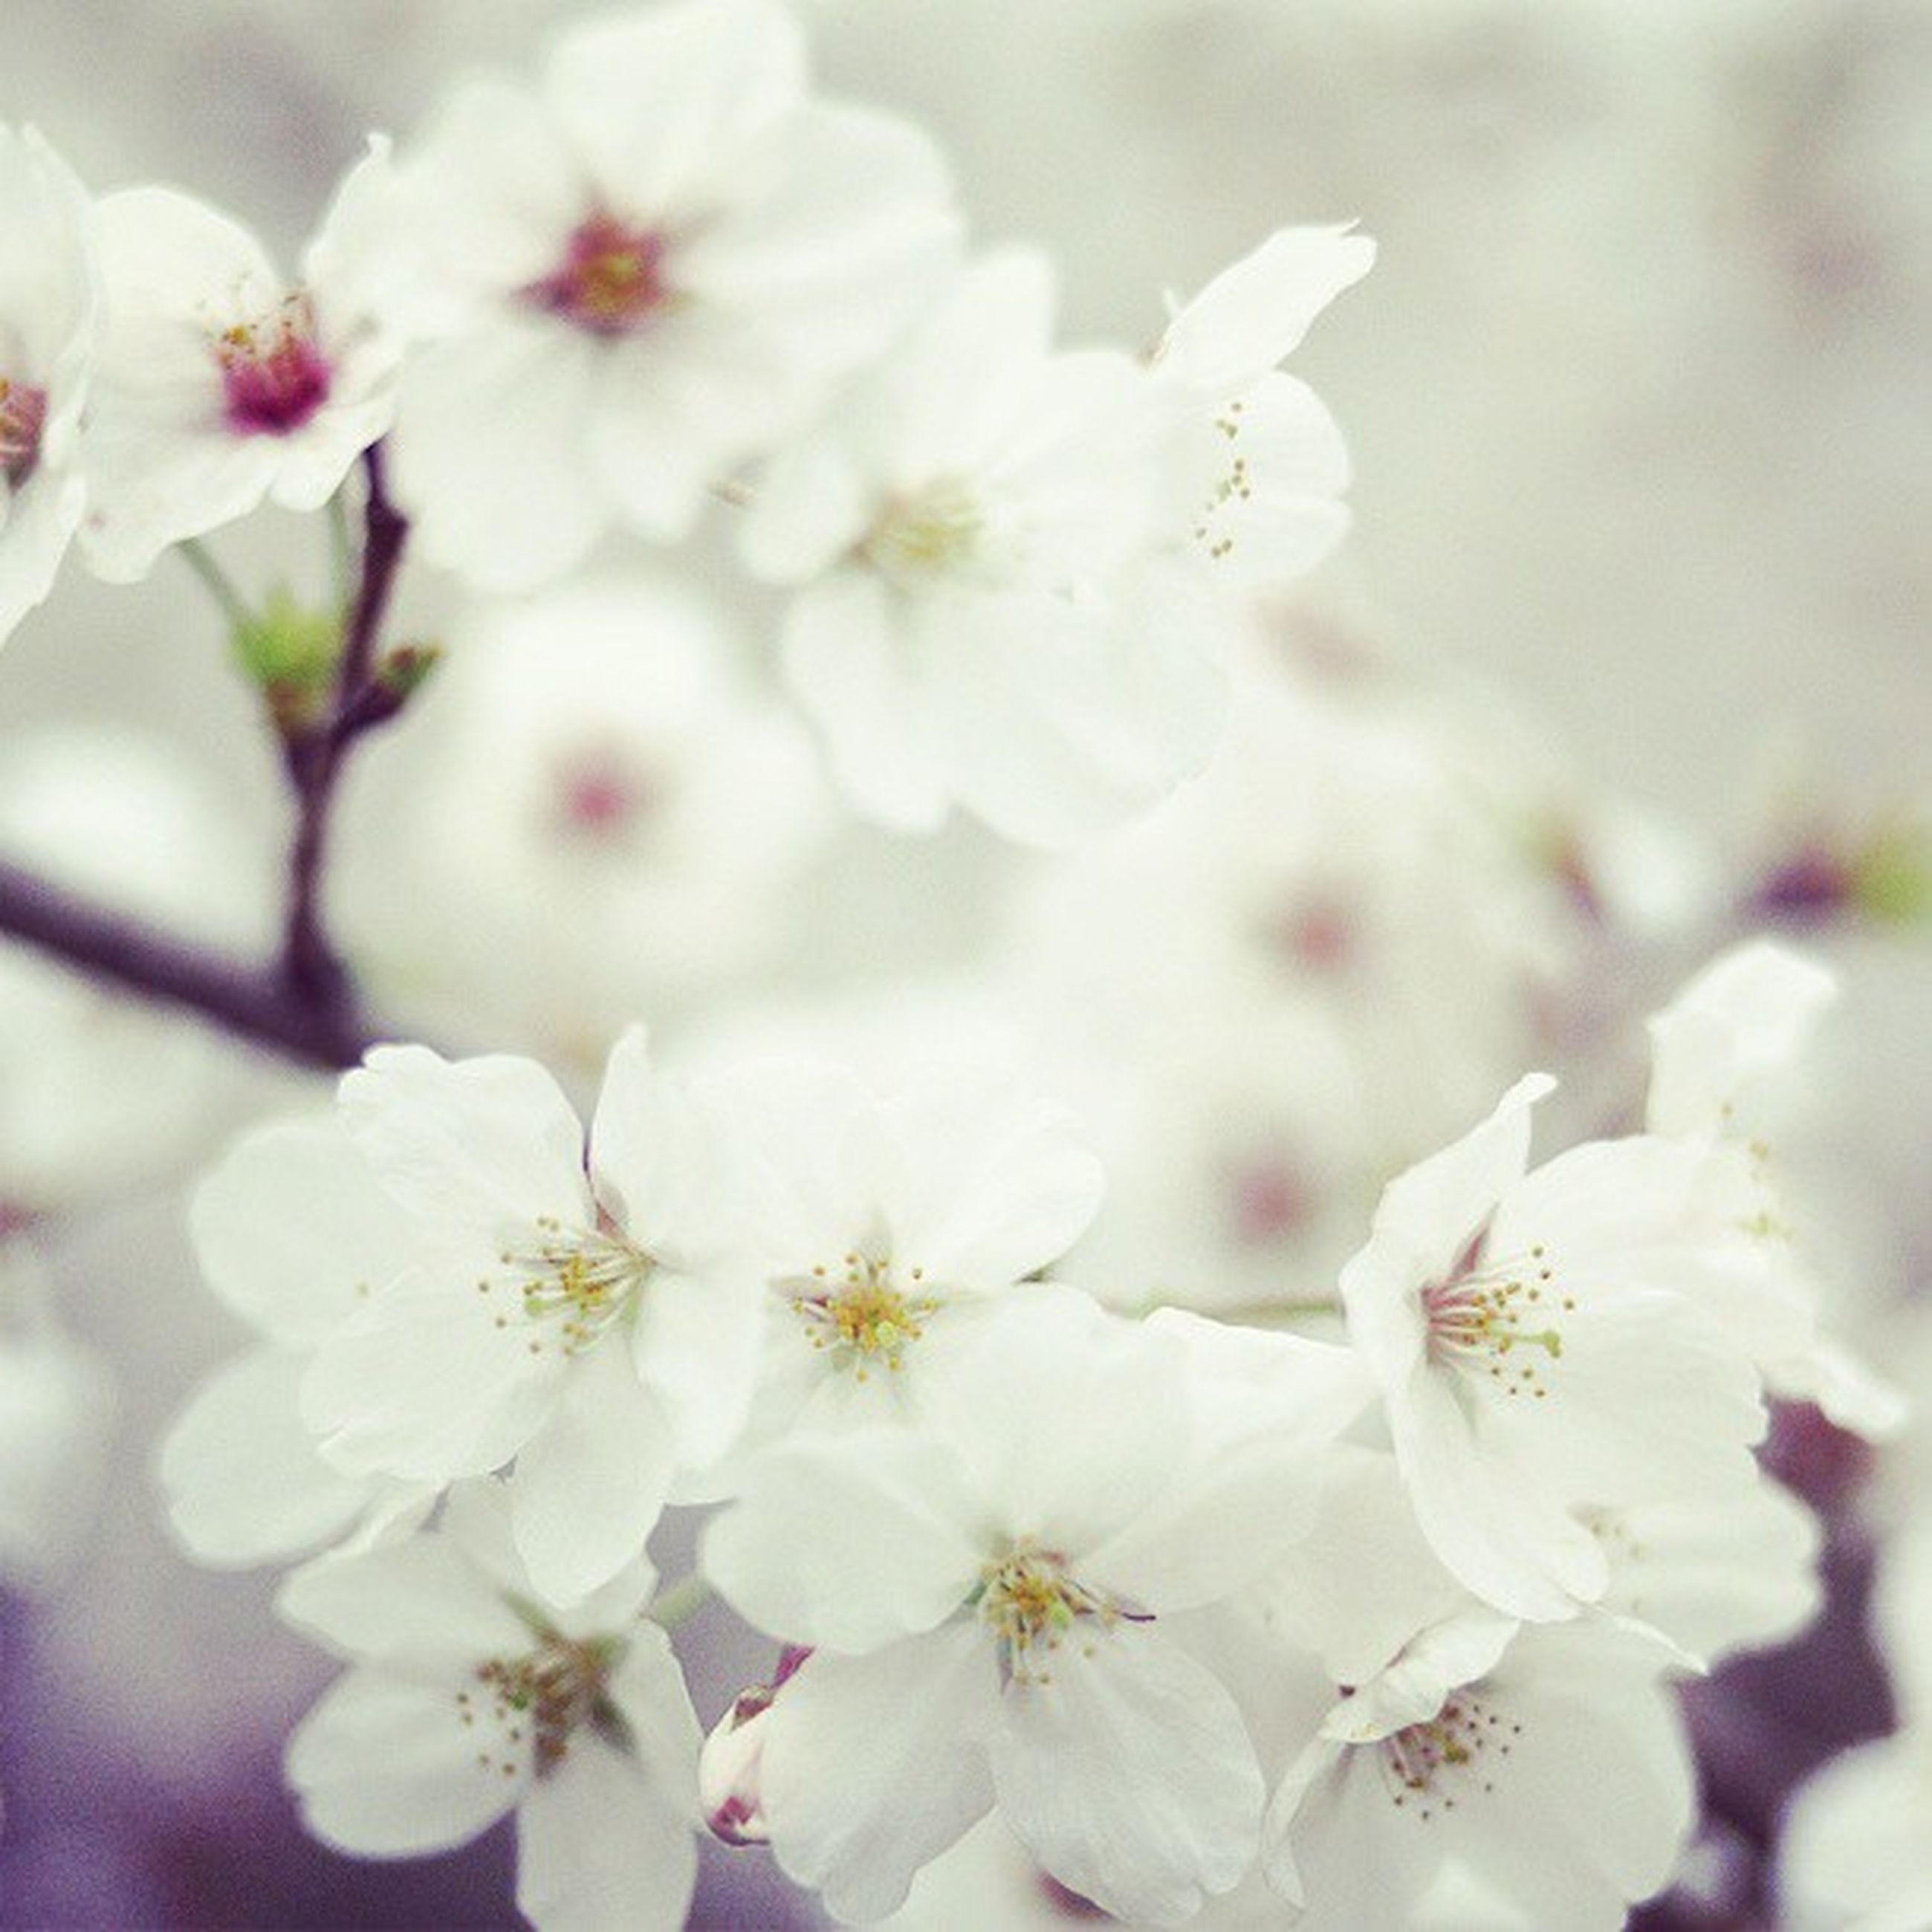 flower, freshness, fragility, growth, petal, white color, beauty in nature, cherry blossom, focus on foreground, flower head, nature, close-up, blossom, blooming, in bloom, stamen, cherry tree, tree, branch, springtime